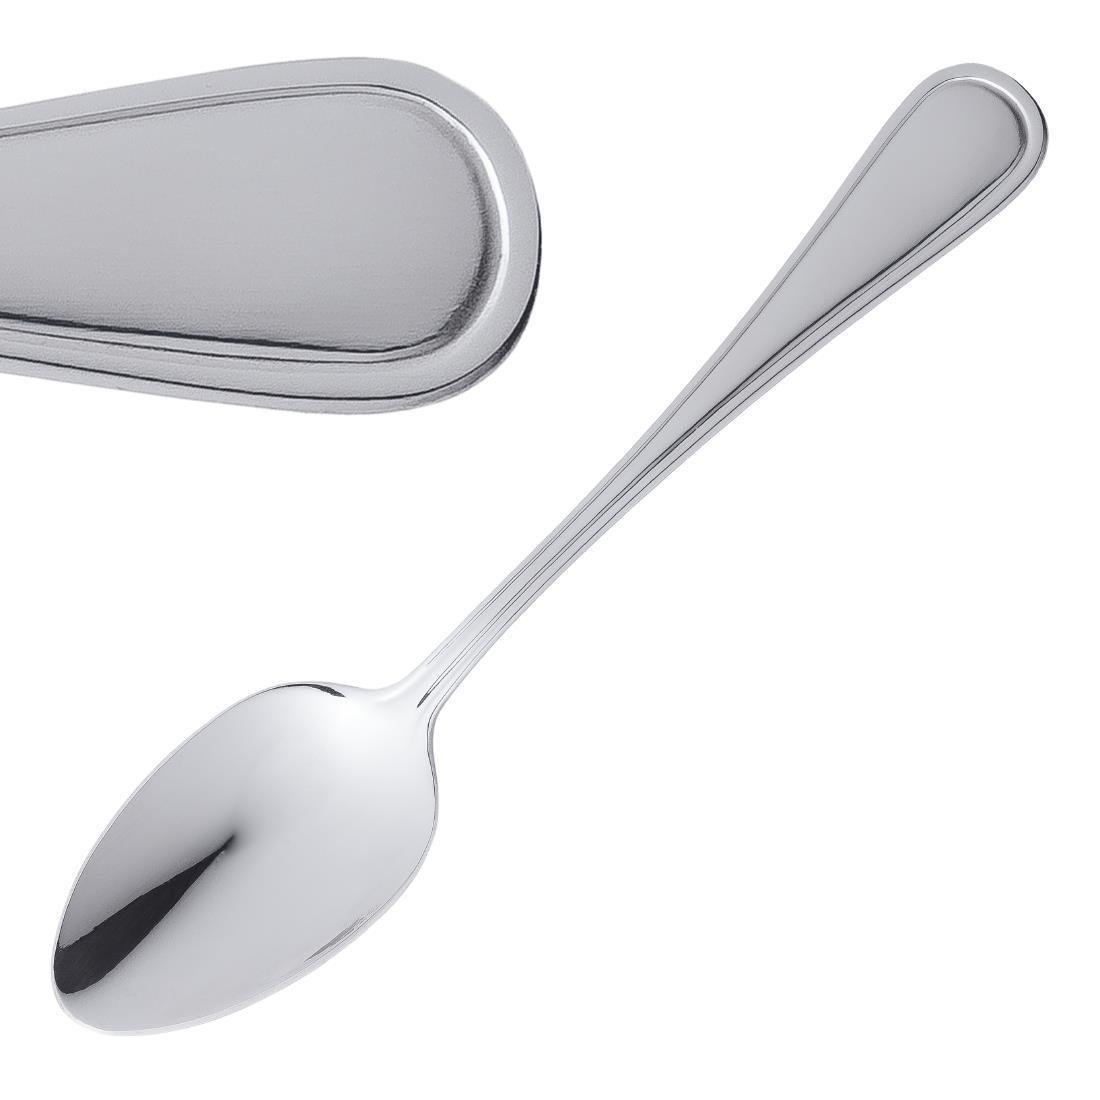 Olympia Mayfair Dessert Spoon